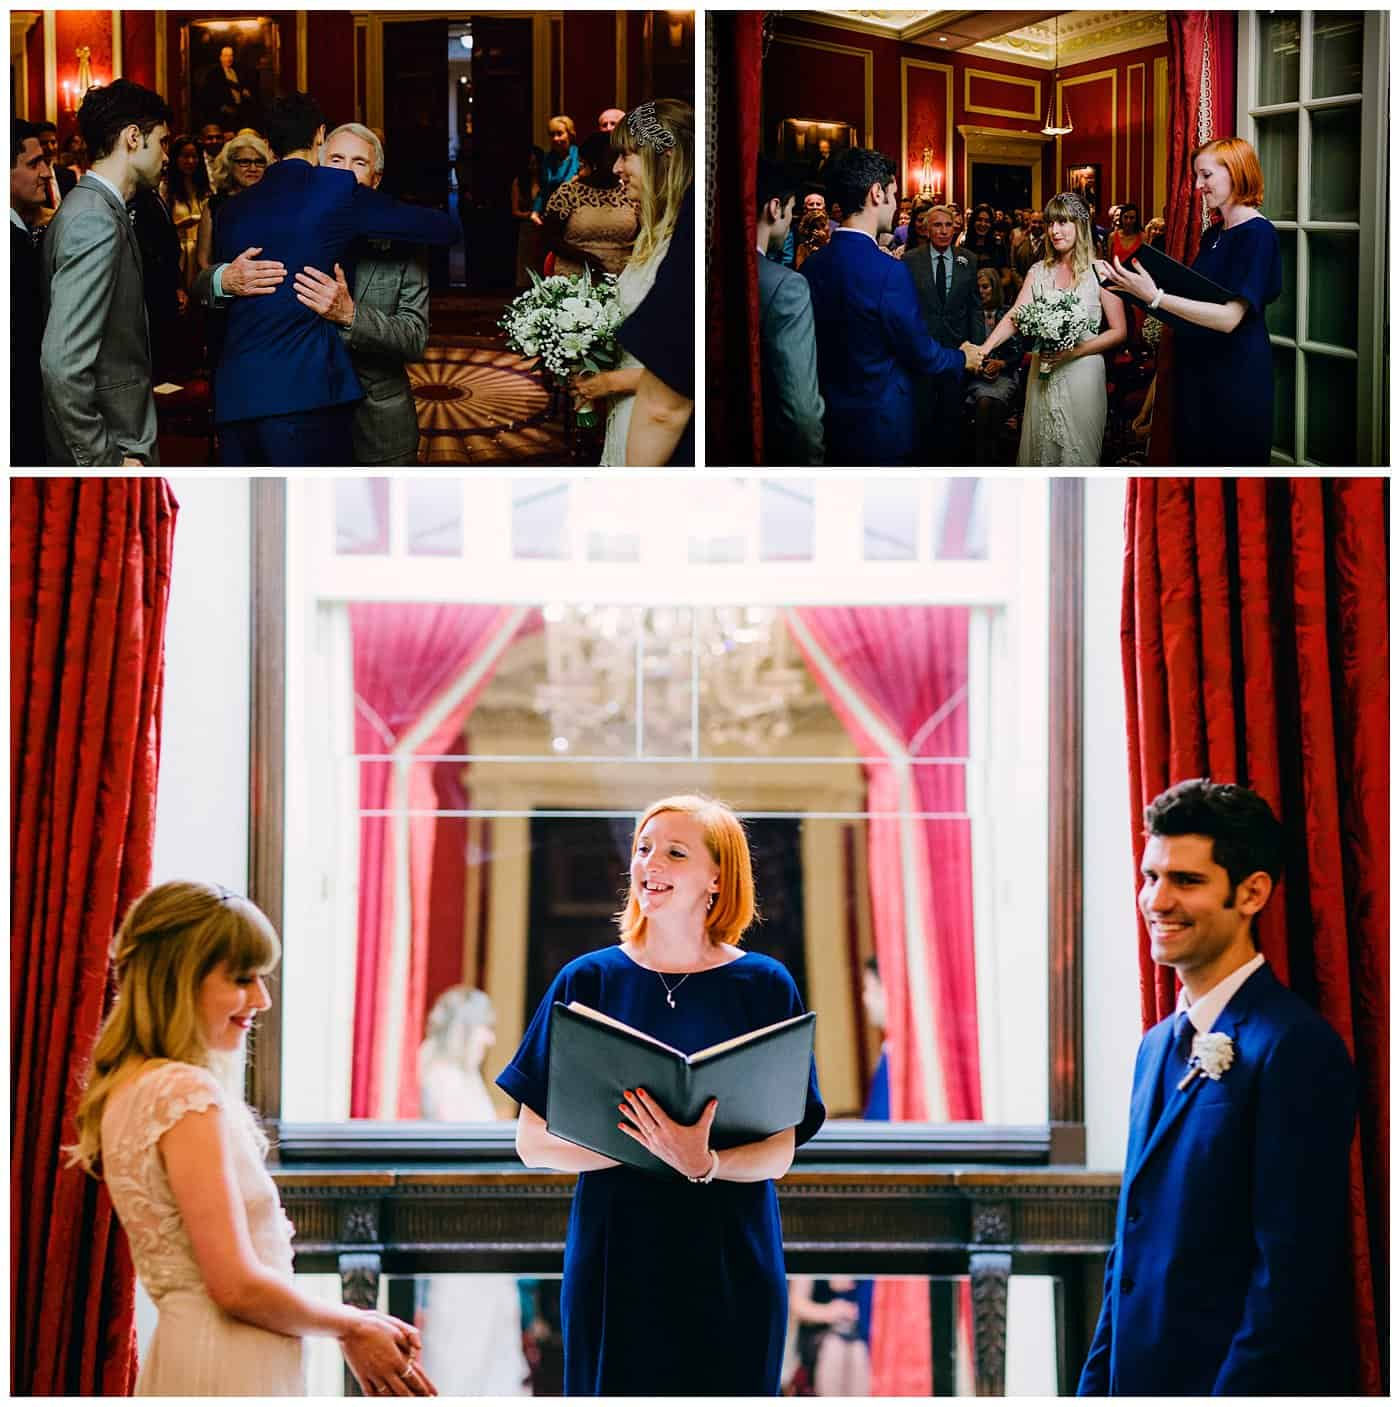 Wedding ceremony at RAC London